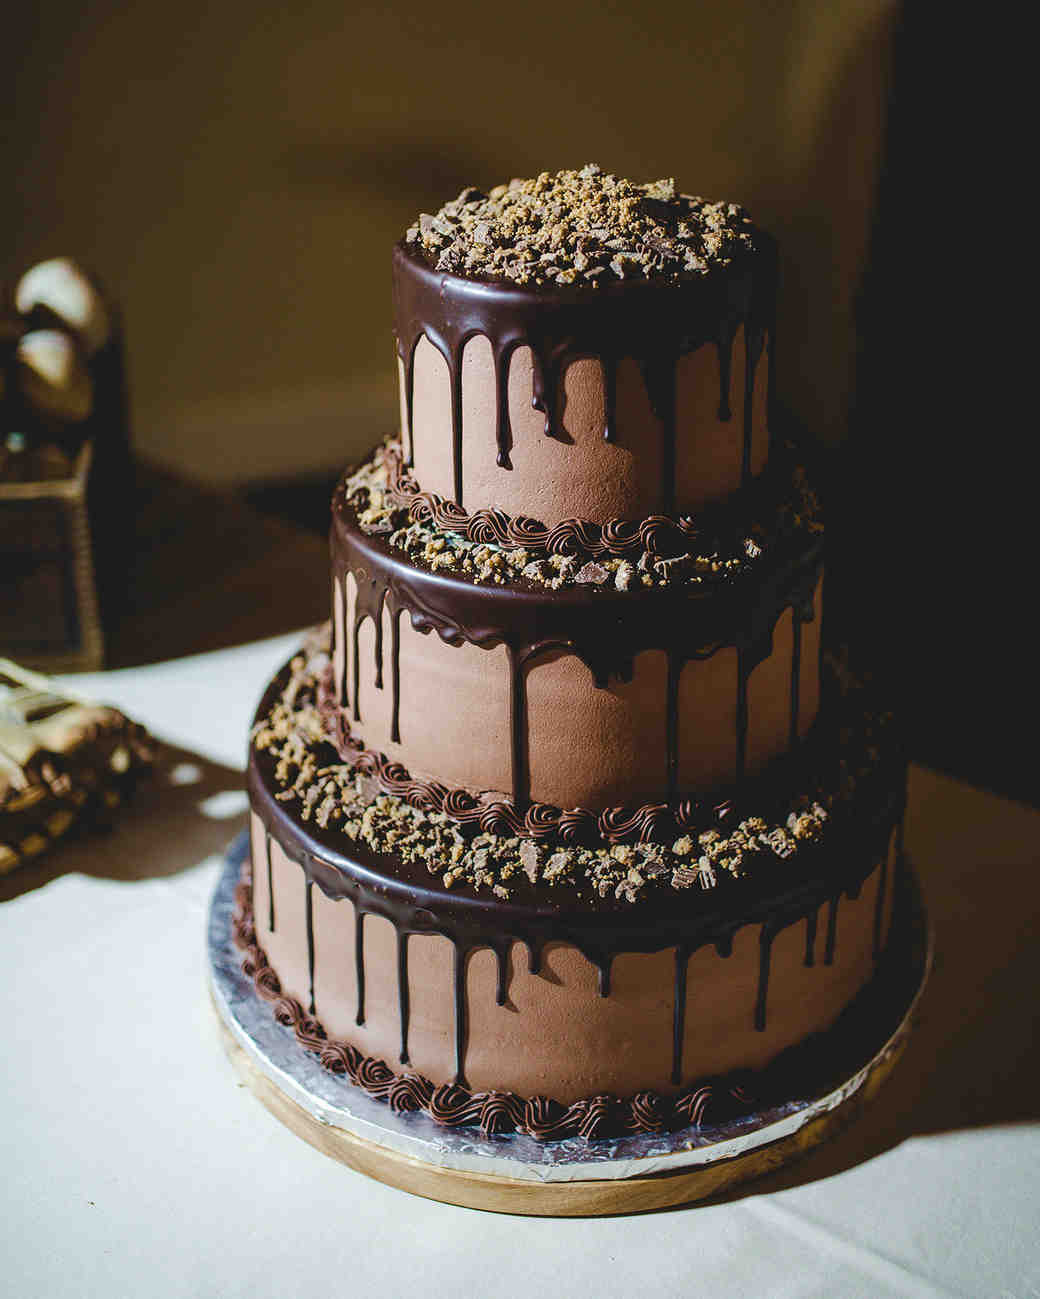 Chocolate Wedding Cakes Pictures  26 Chocolate Wedding Cake Ideas That Will Blow Your Guests